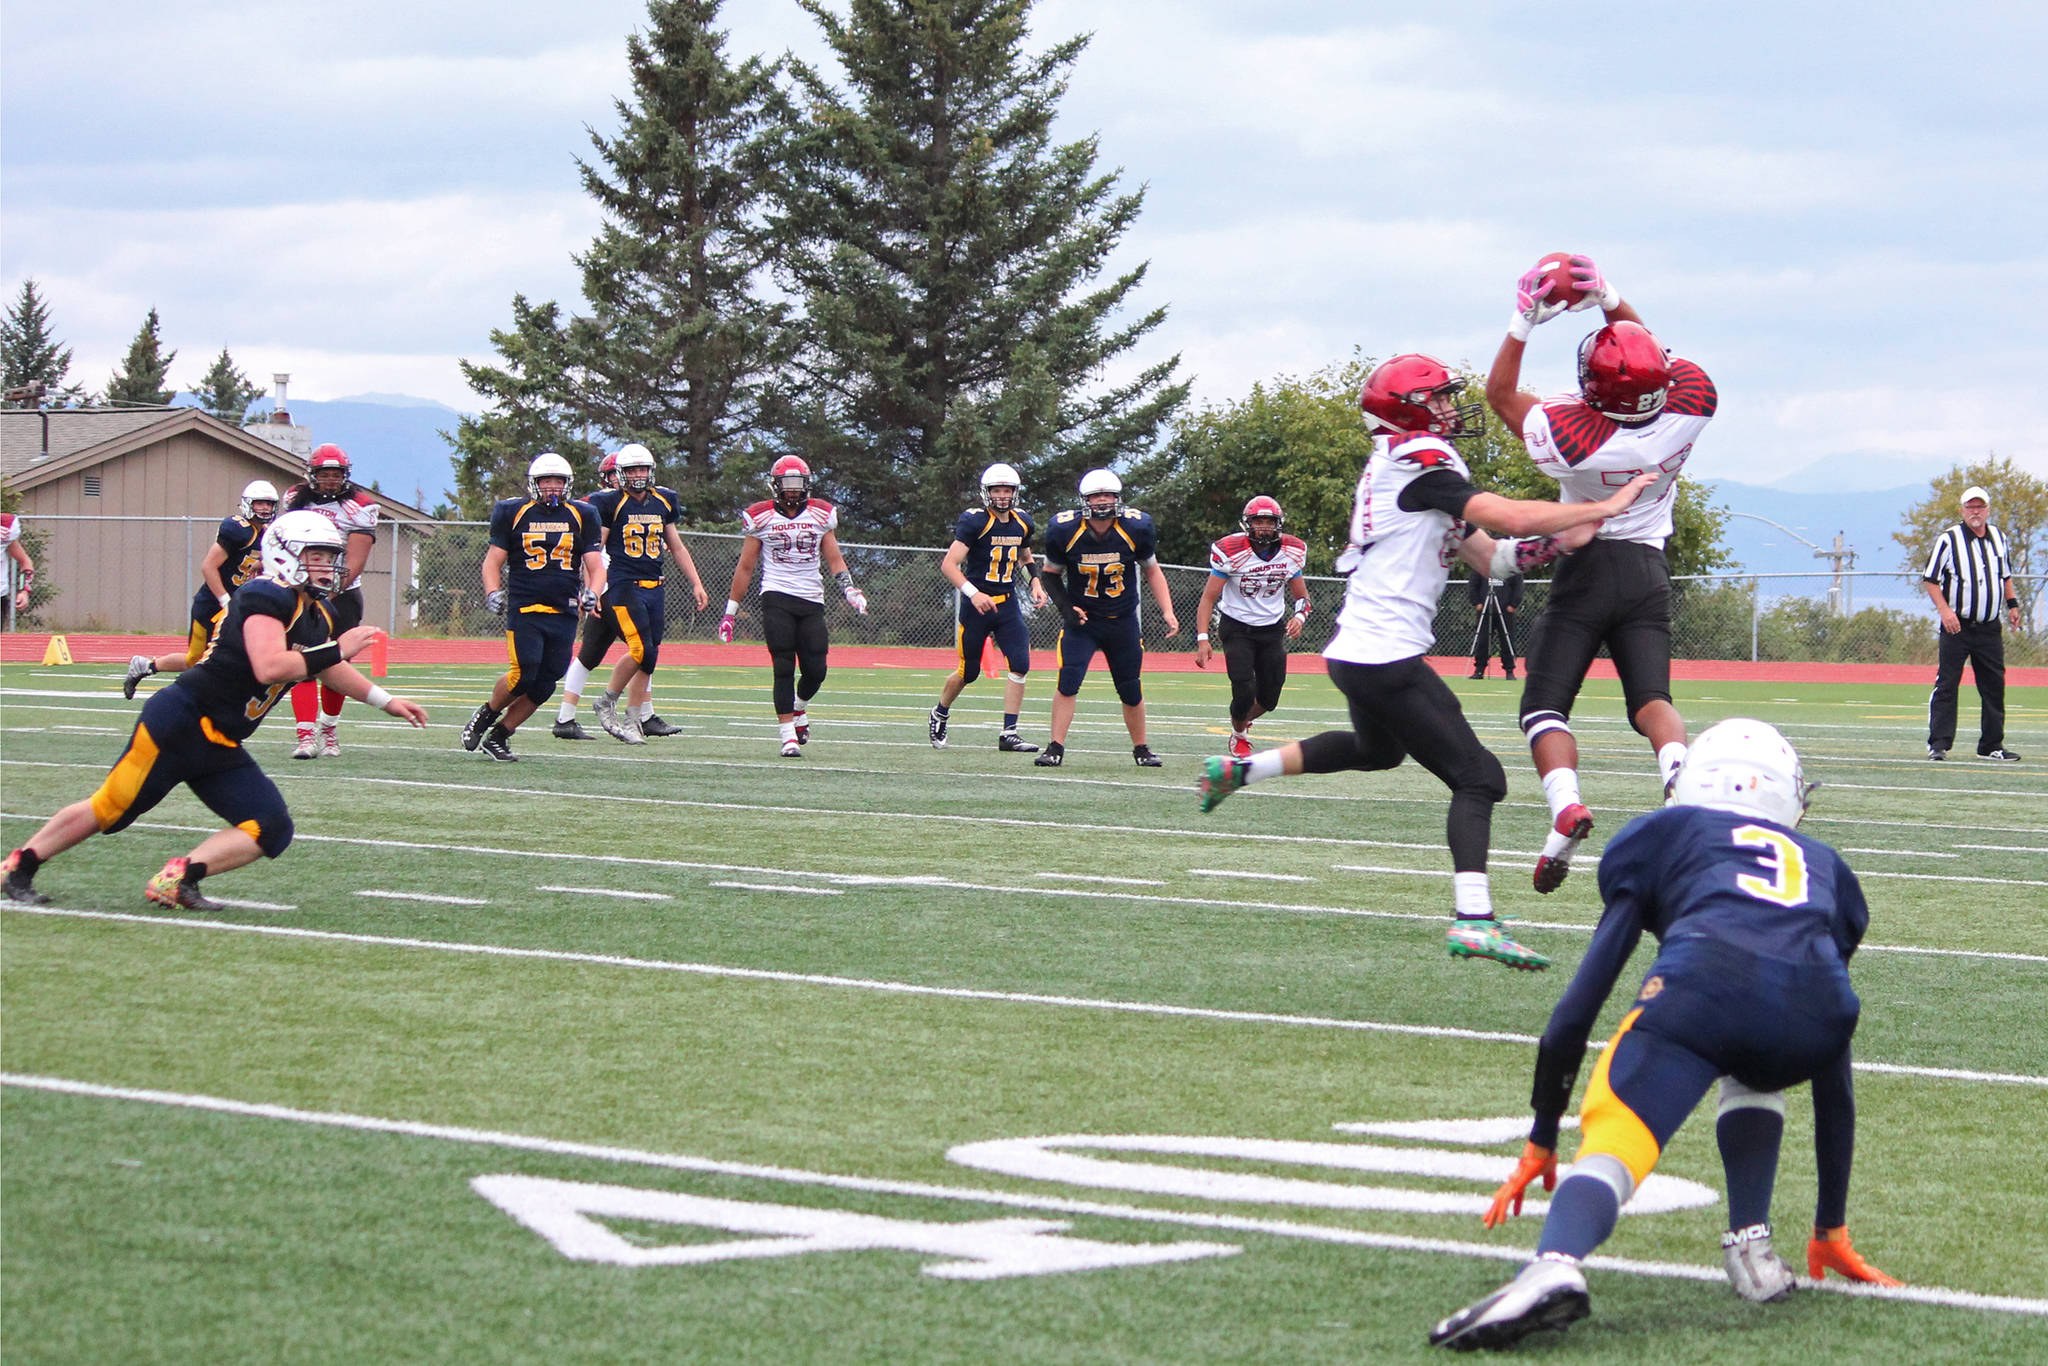 Houston's Apete Sasiu intercepts a pass from Homer's Josh Bradshaw before marking a touchdown during a Friday, Sept. 6, 2019 football game between the two teams at Homer High School in Homer, Alaska. (Photo by Megan Pacer/Homer News)